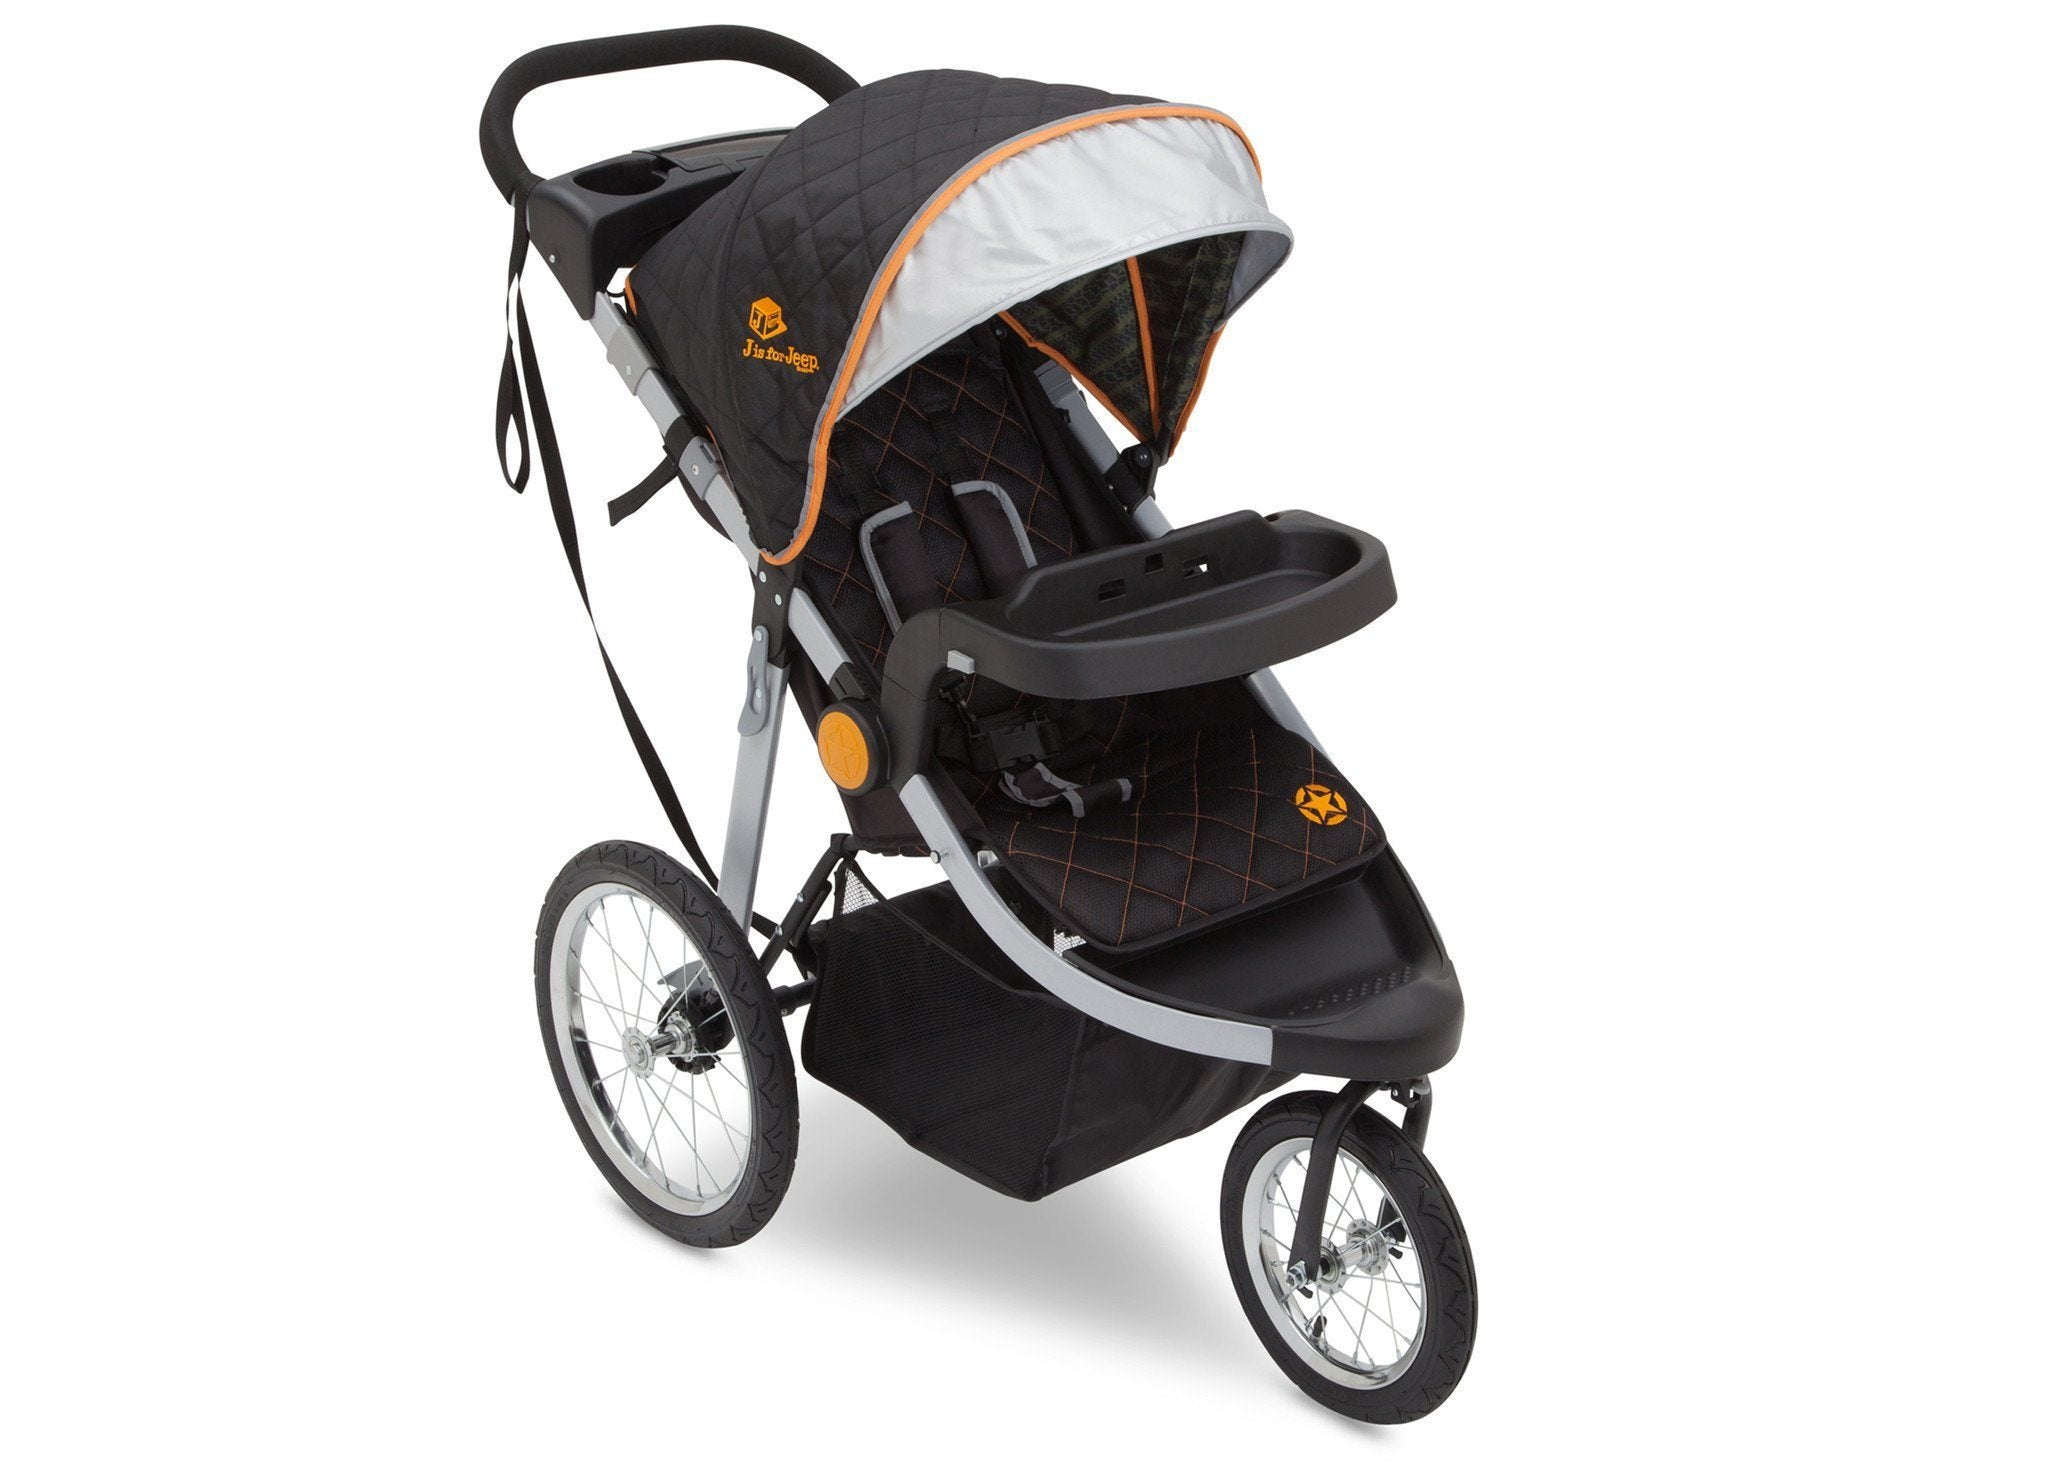 Delta Children J is for Jeep Brand Trek Orange (835) Cross Country All Terrain Jogging Stroller Right Side View, with Canopy, Child Tray and Sun Visor d1d